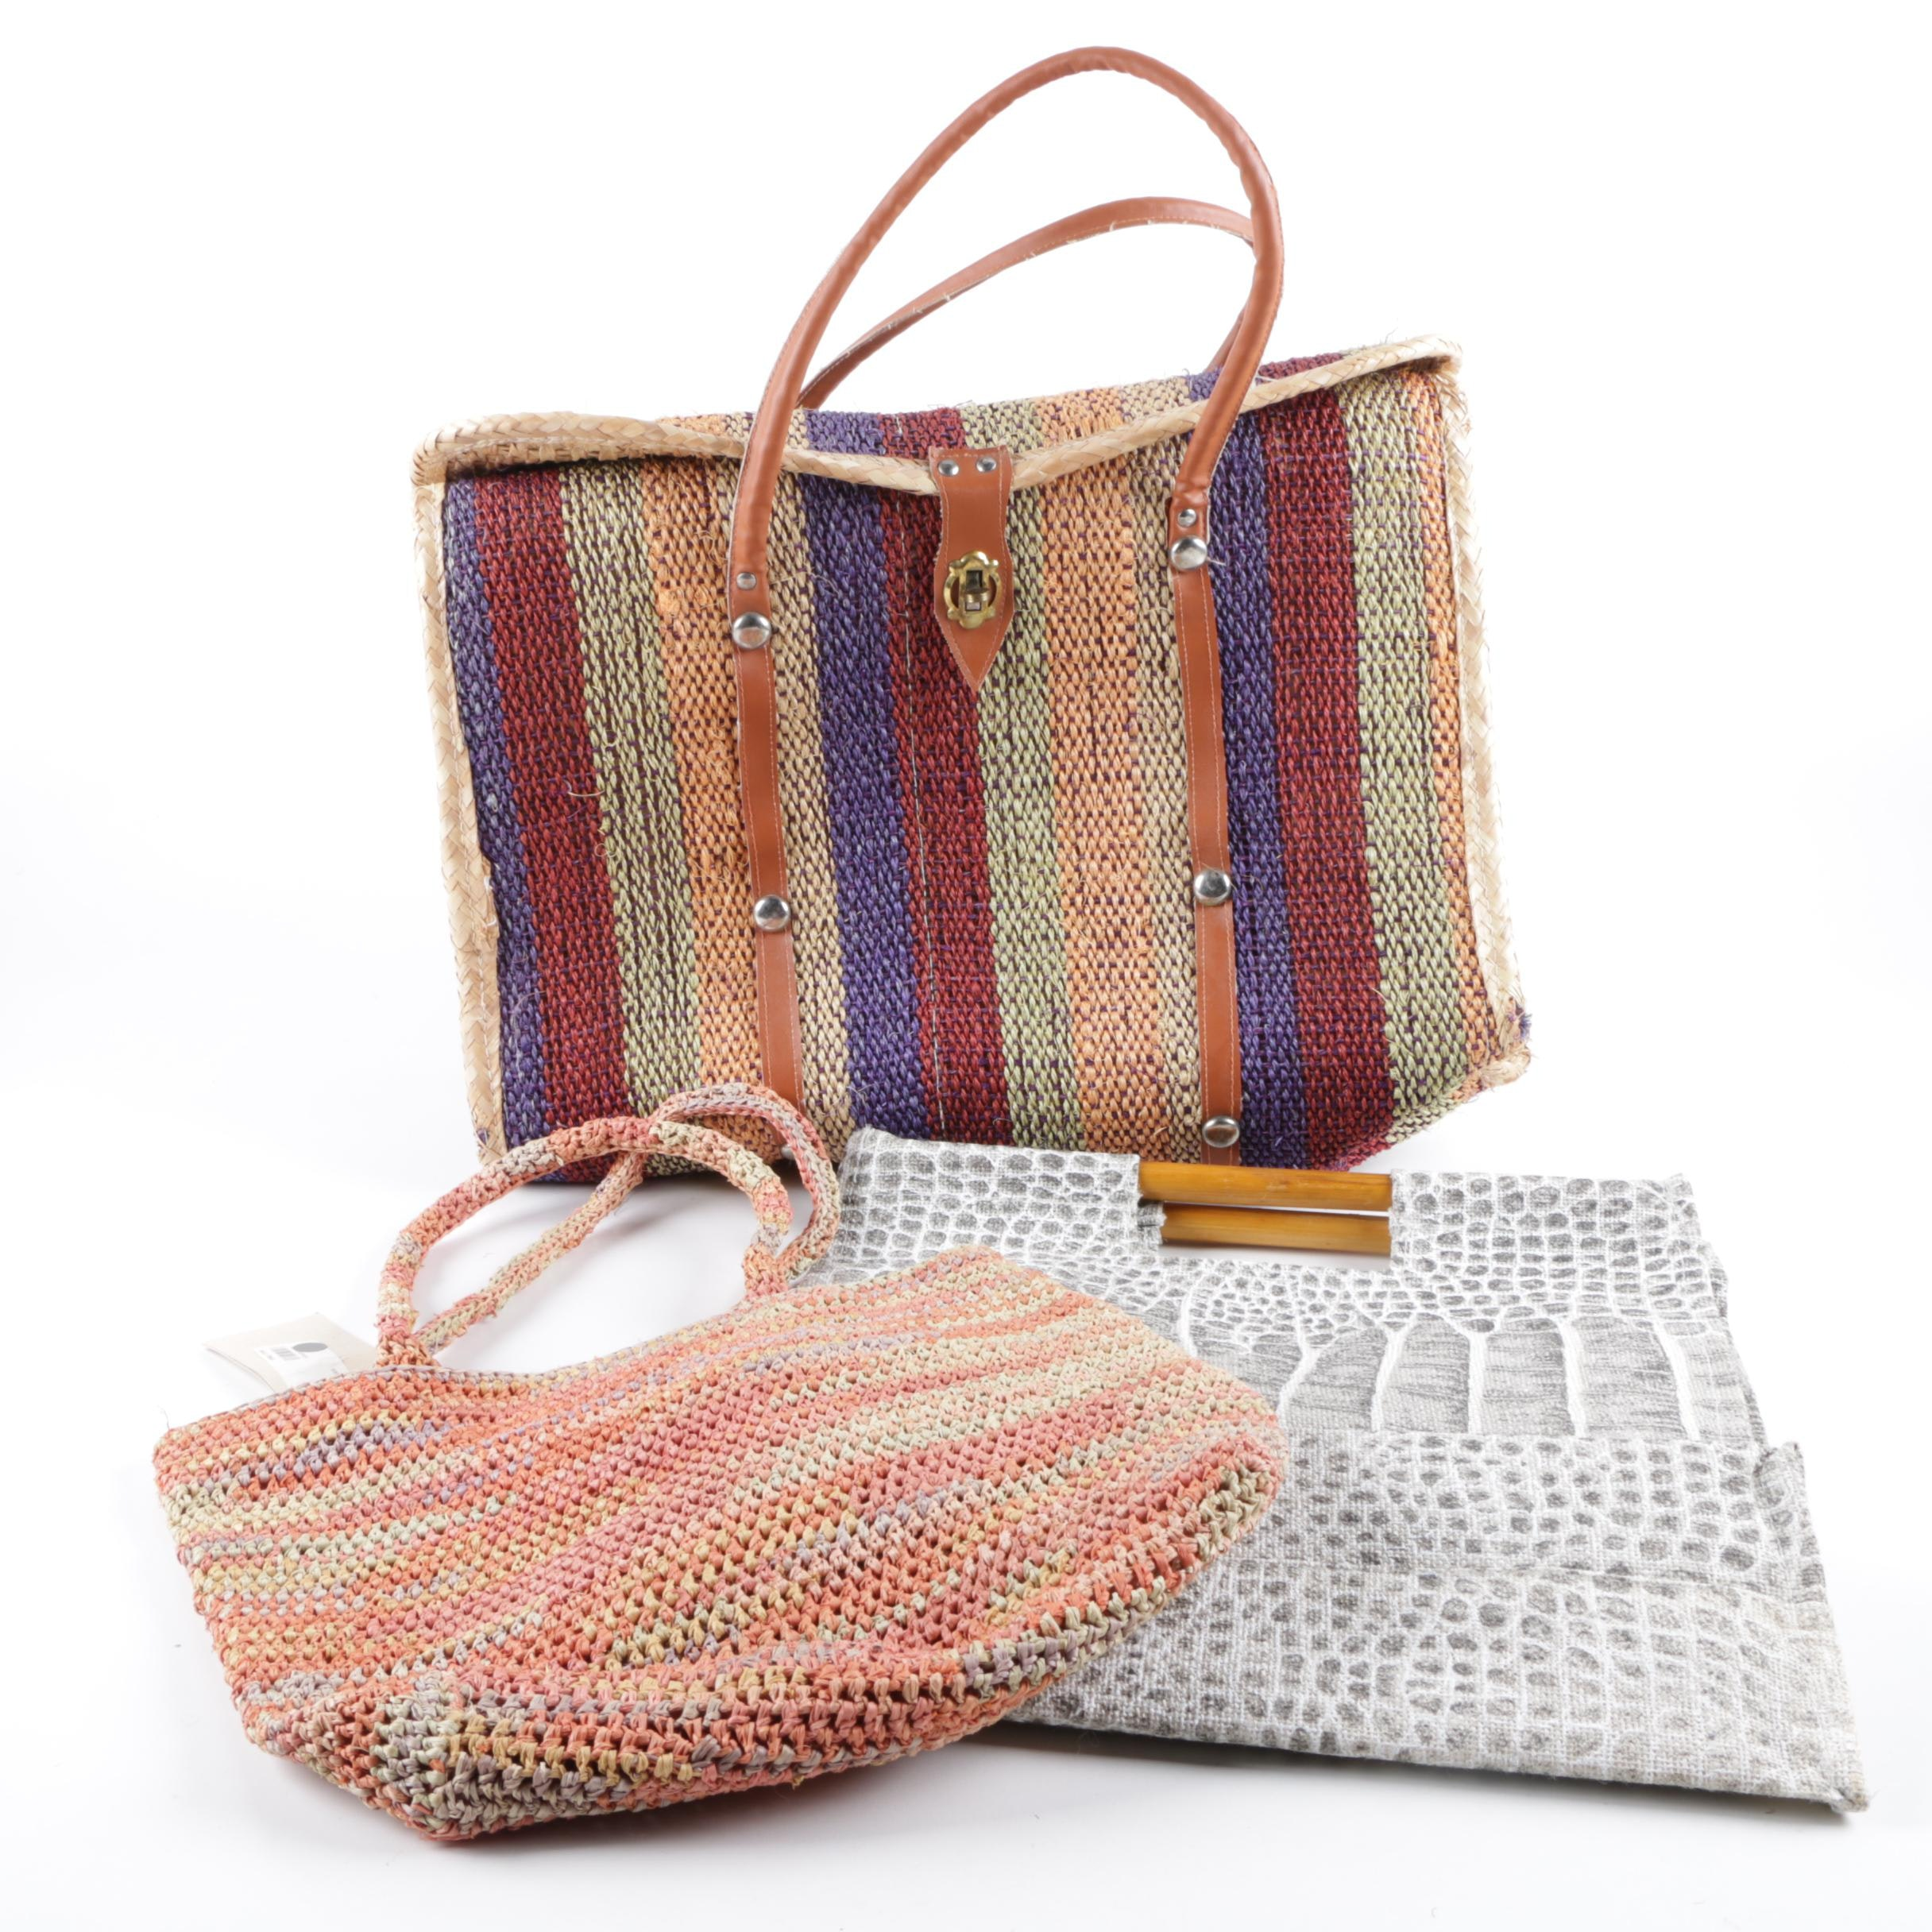 Straw, Raffia and Burlap Handbags Including Helen Kaminski